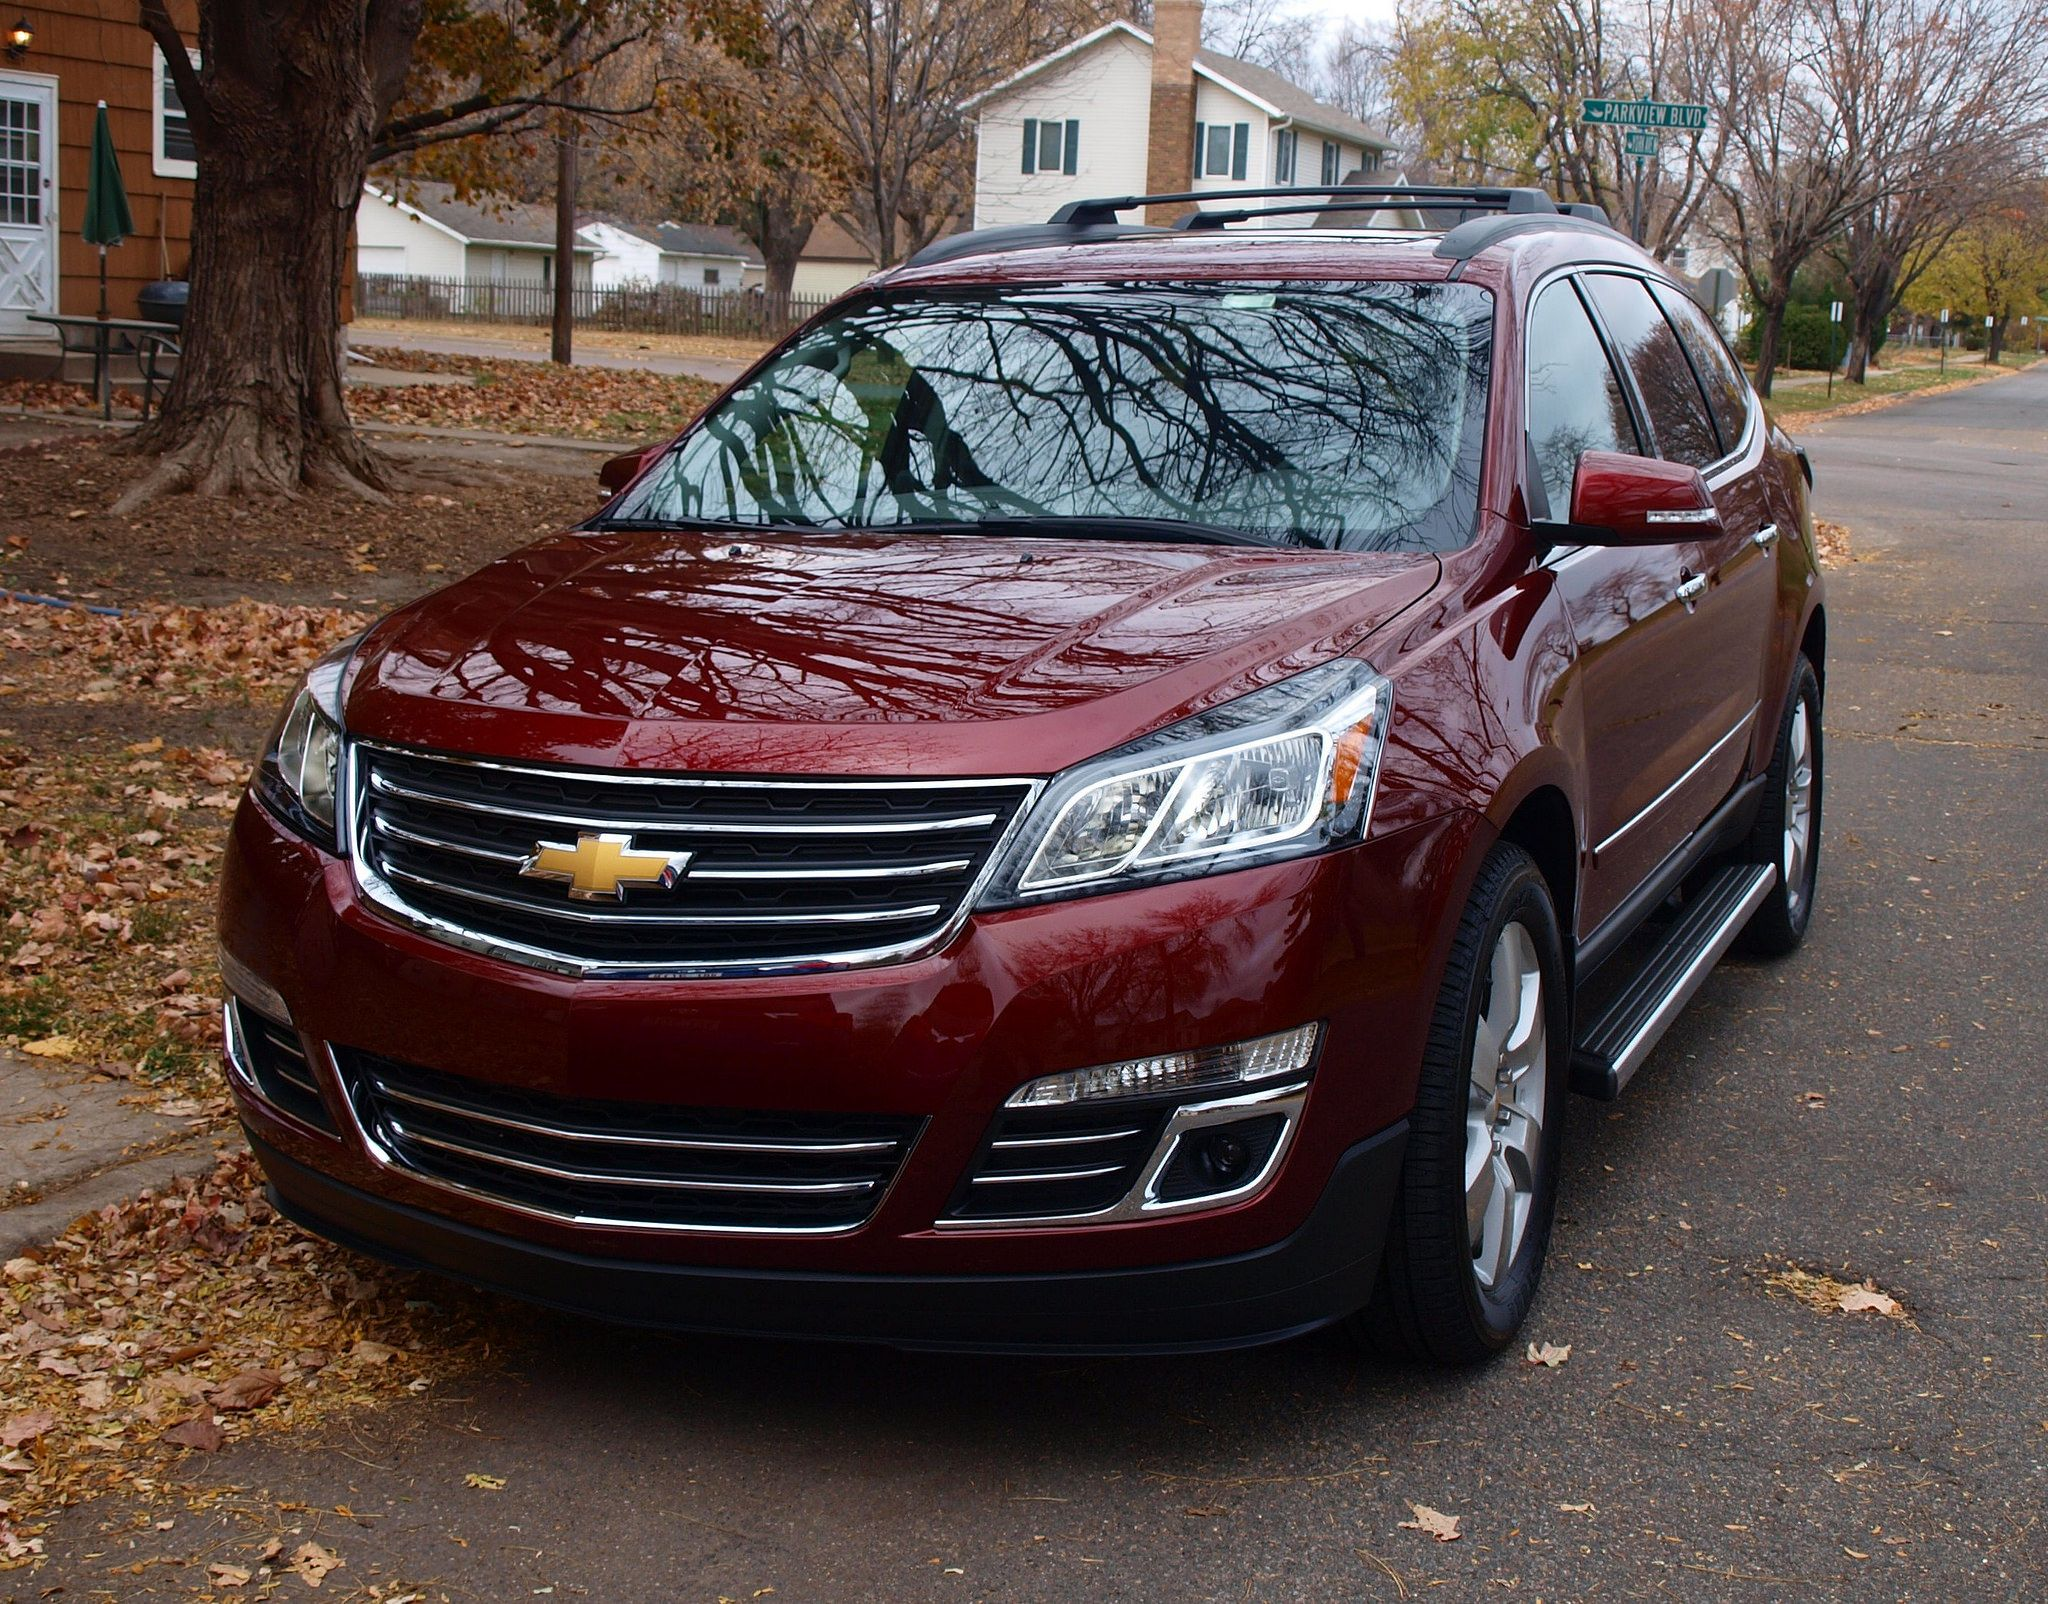 2017 chevy traverse ltz awd this is my dream car for my family so that we can travel together. Black Bedroom Furniture Sets. Home Design Ideas